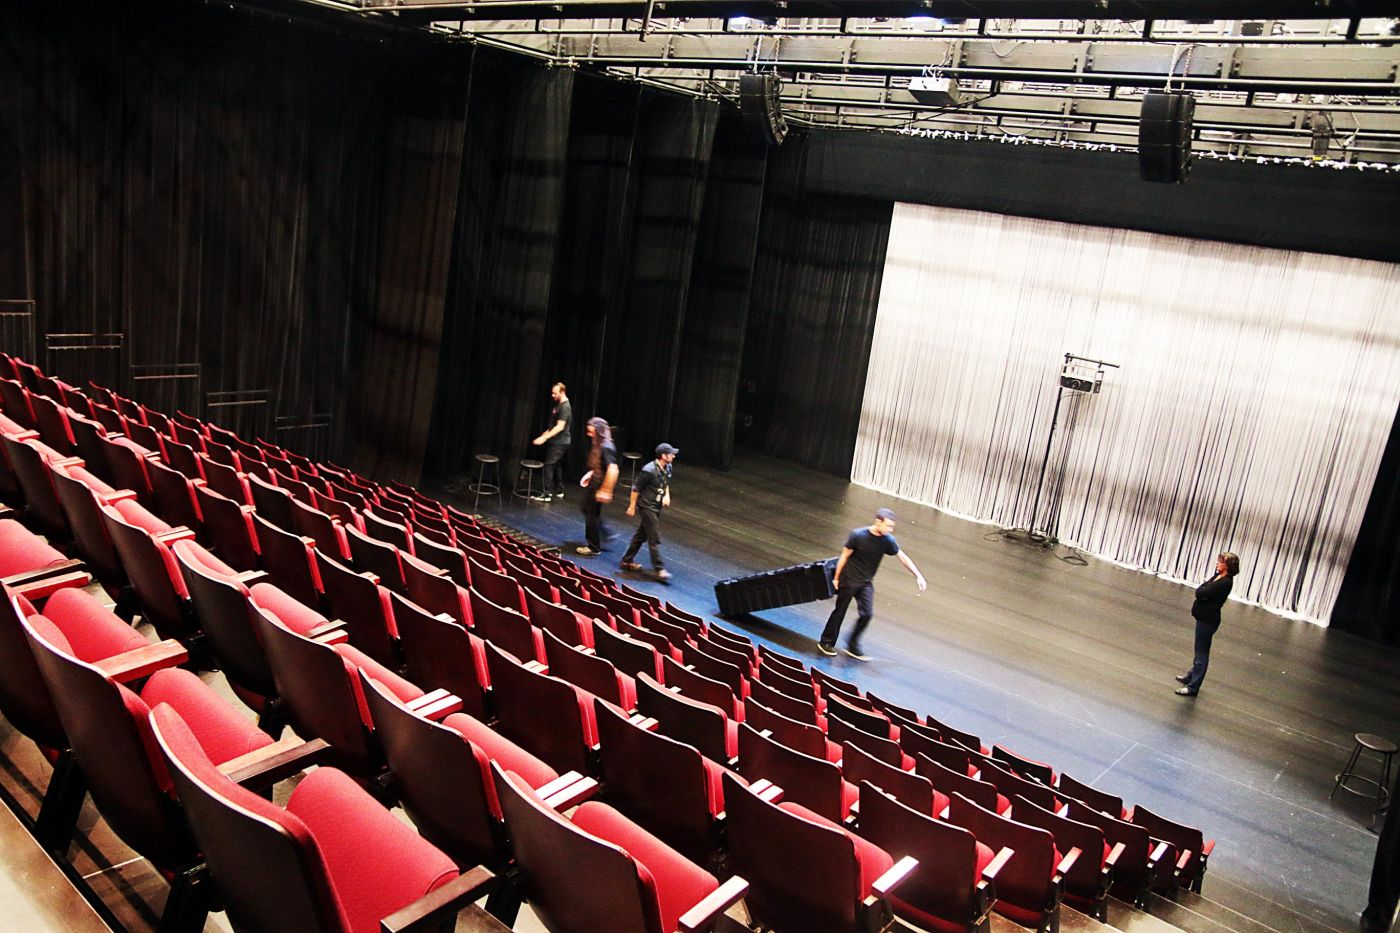 Colour photograph of a theatre, viewed at an angle from above. Rows of bright red seats are arranged in tiers. Five technicians dressed in black work on the stage.